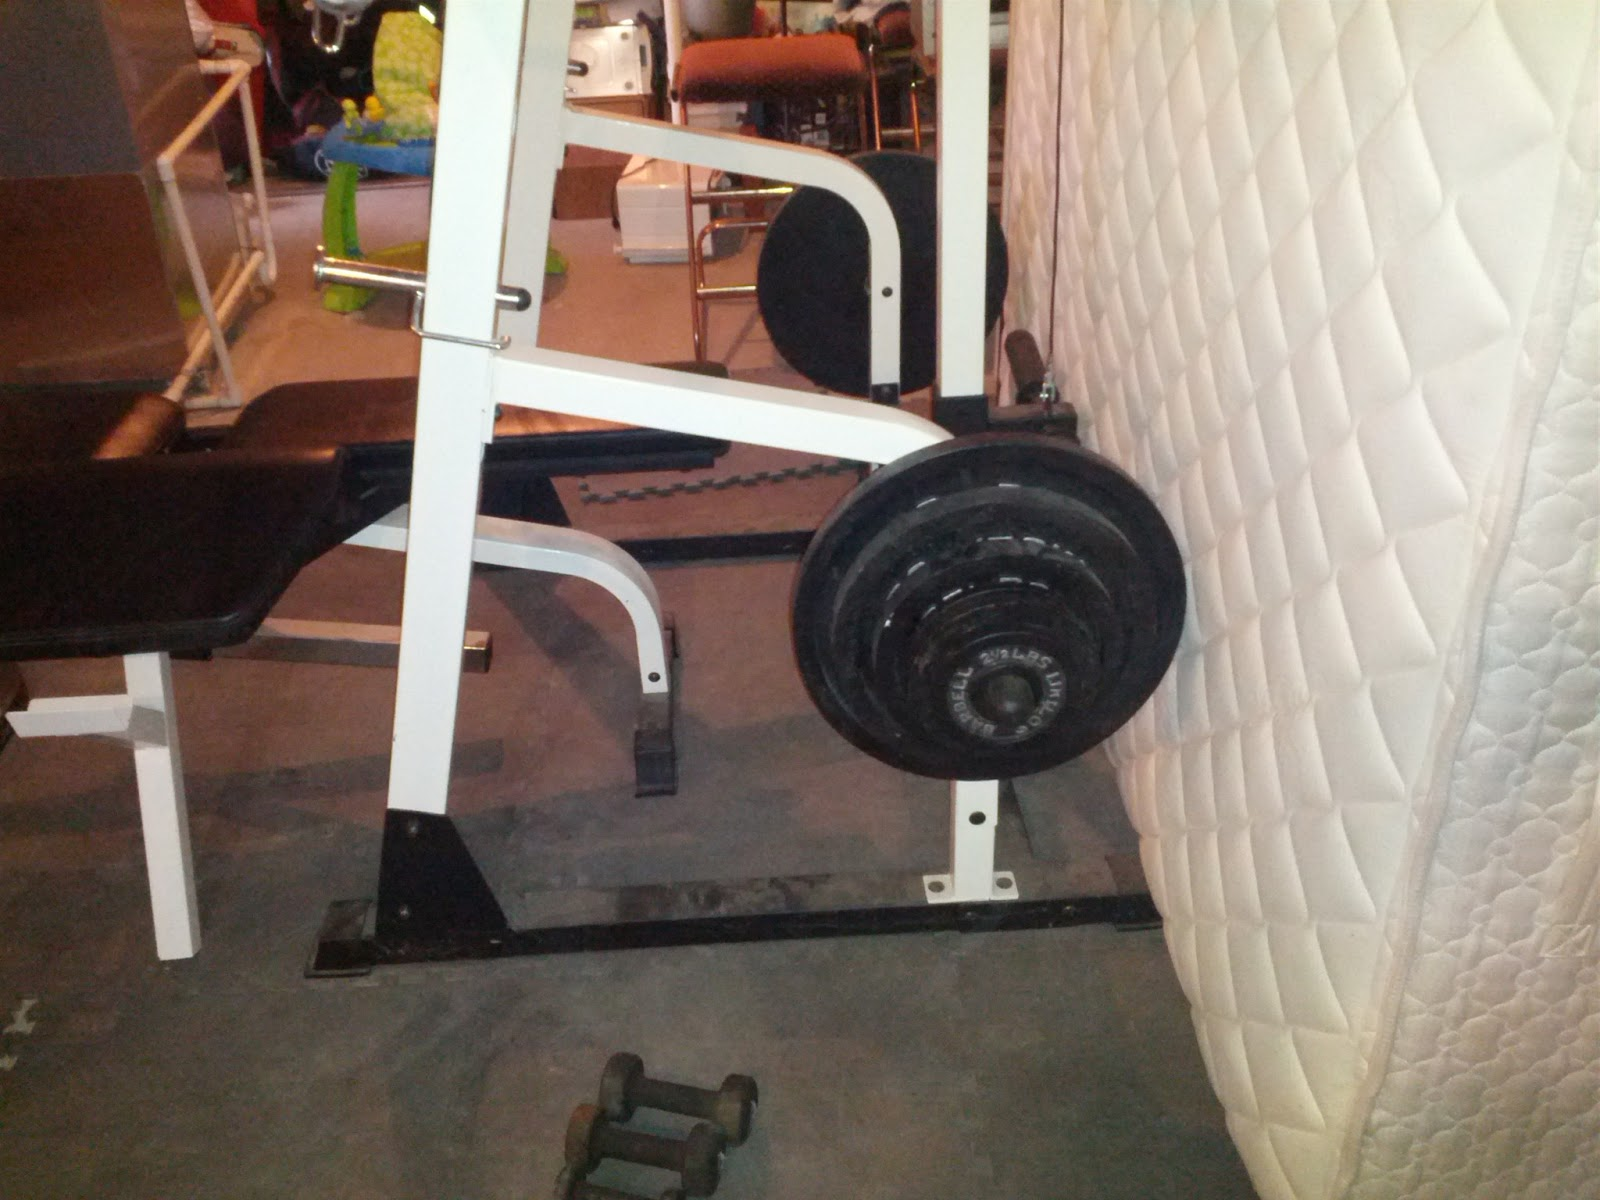 elliptical machine for sale craigslist